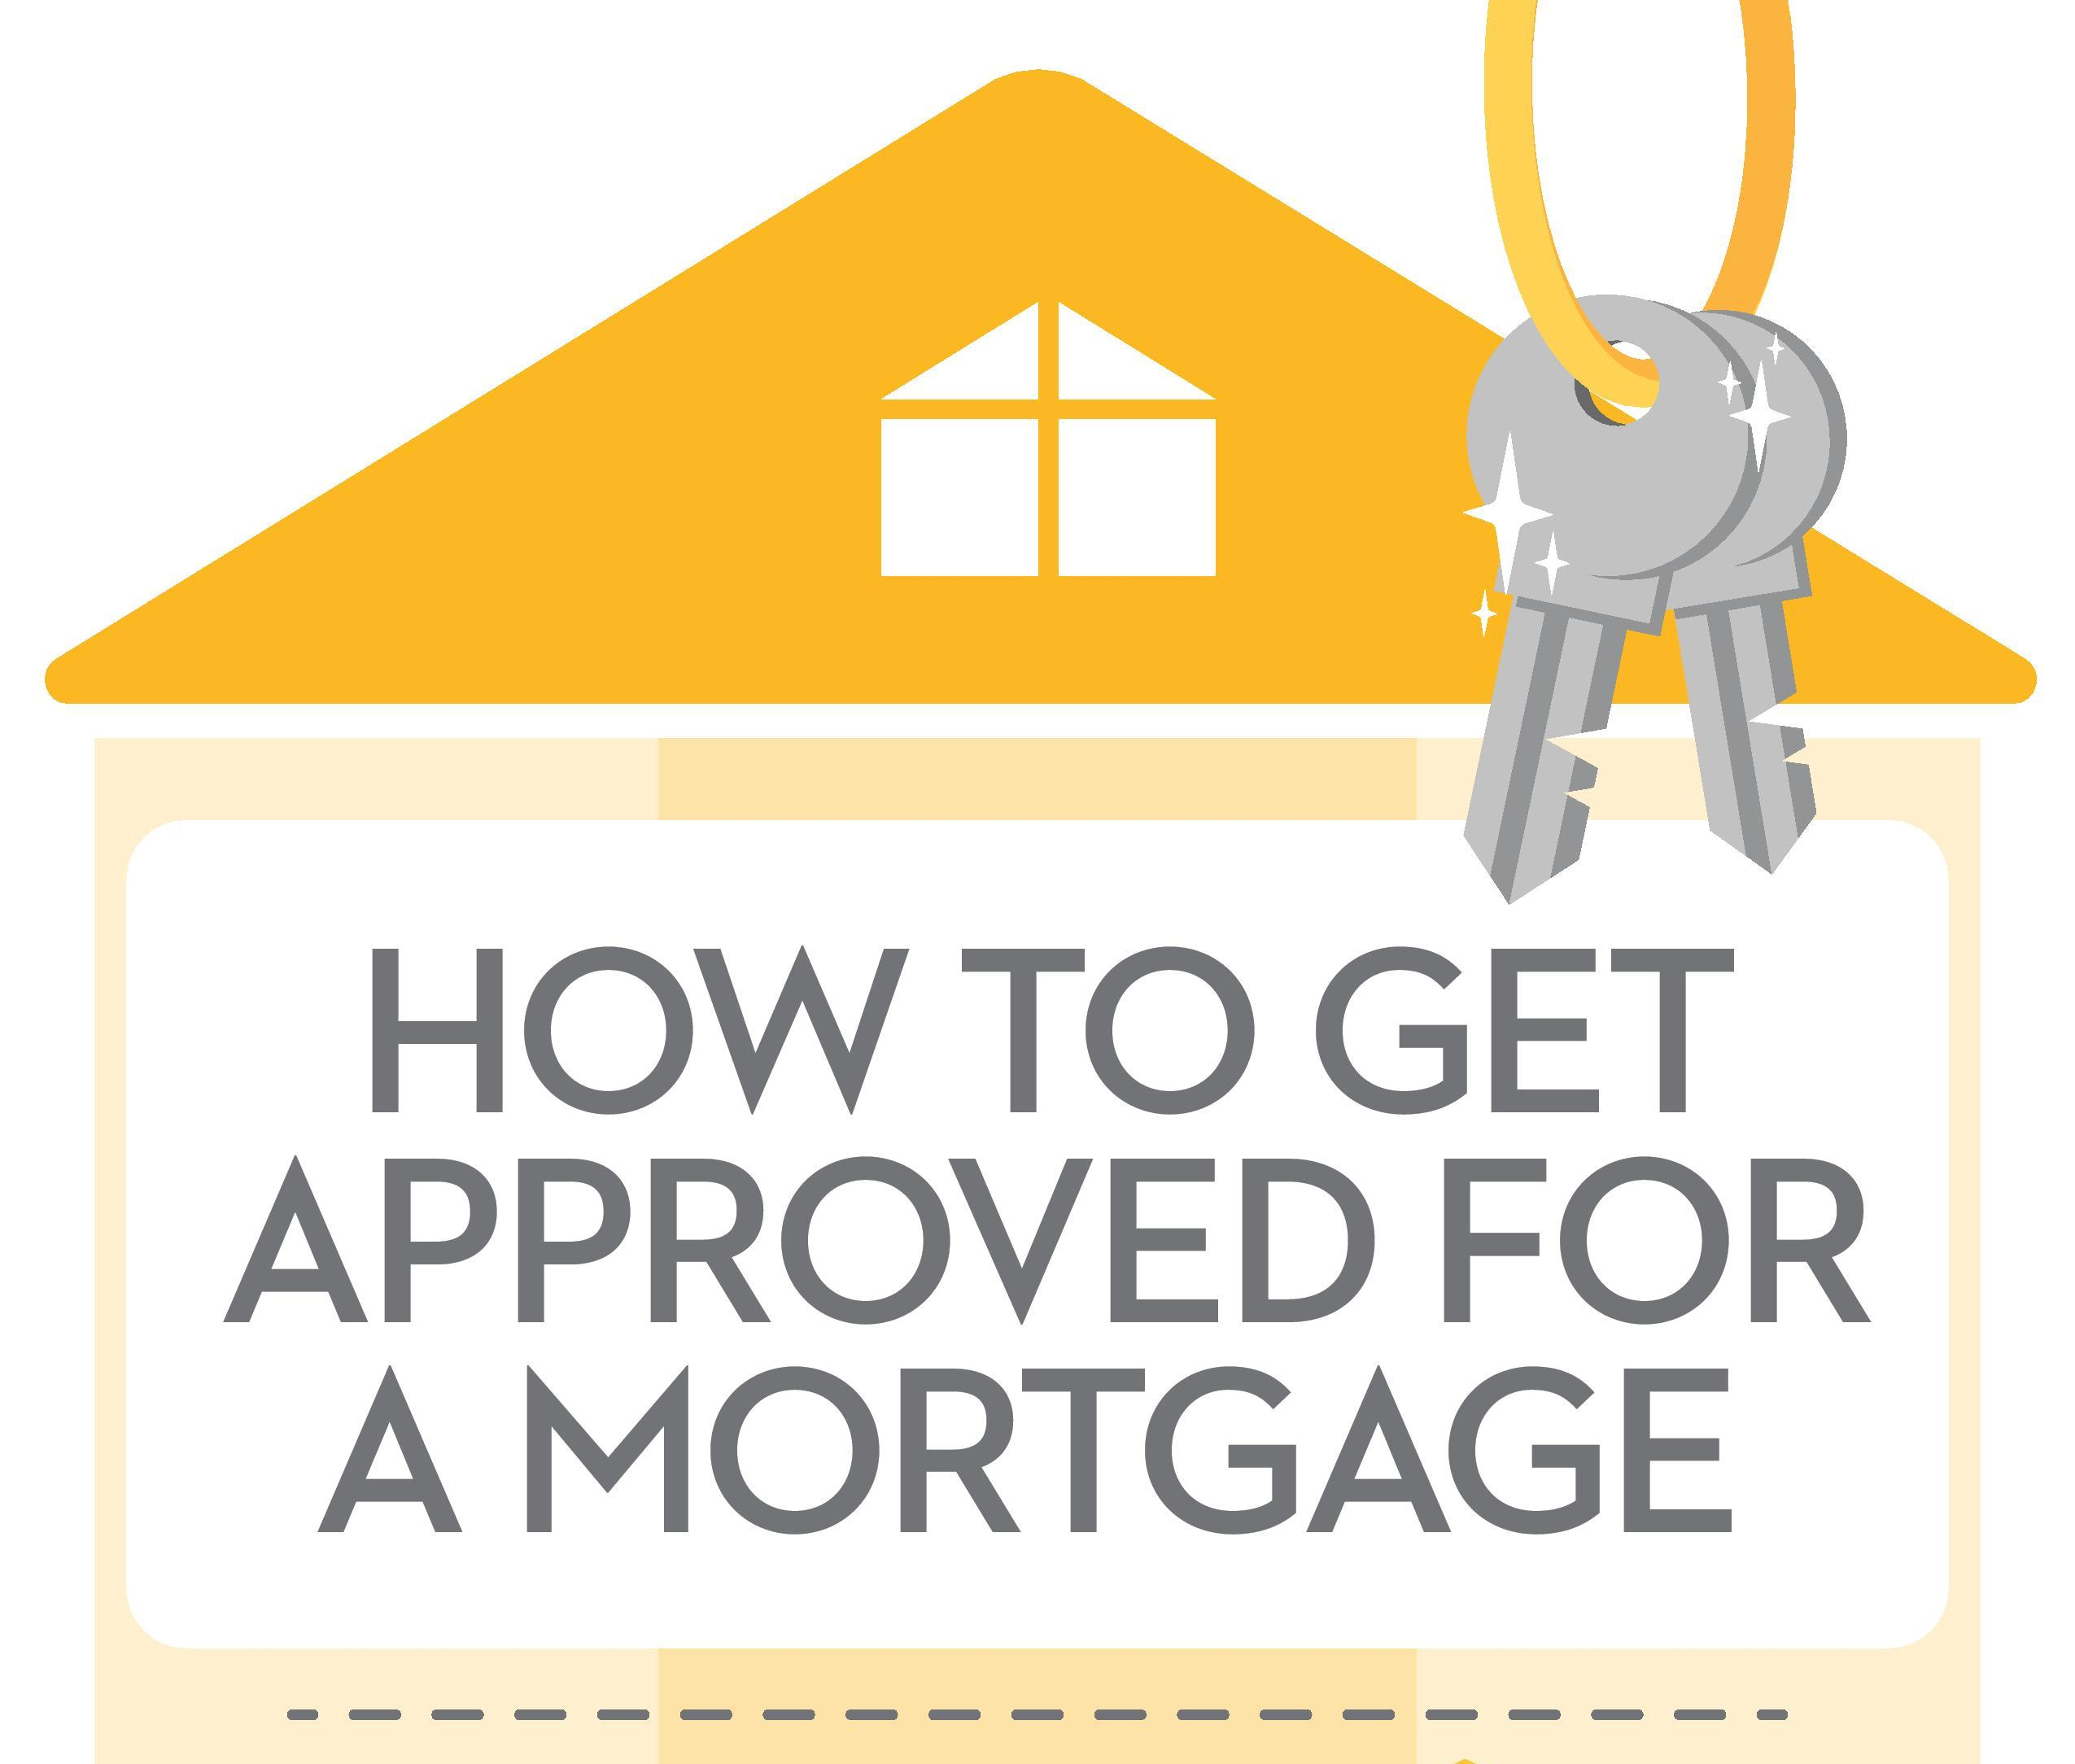 USEA mortgage approval infographic2-page-001